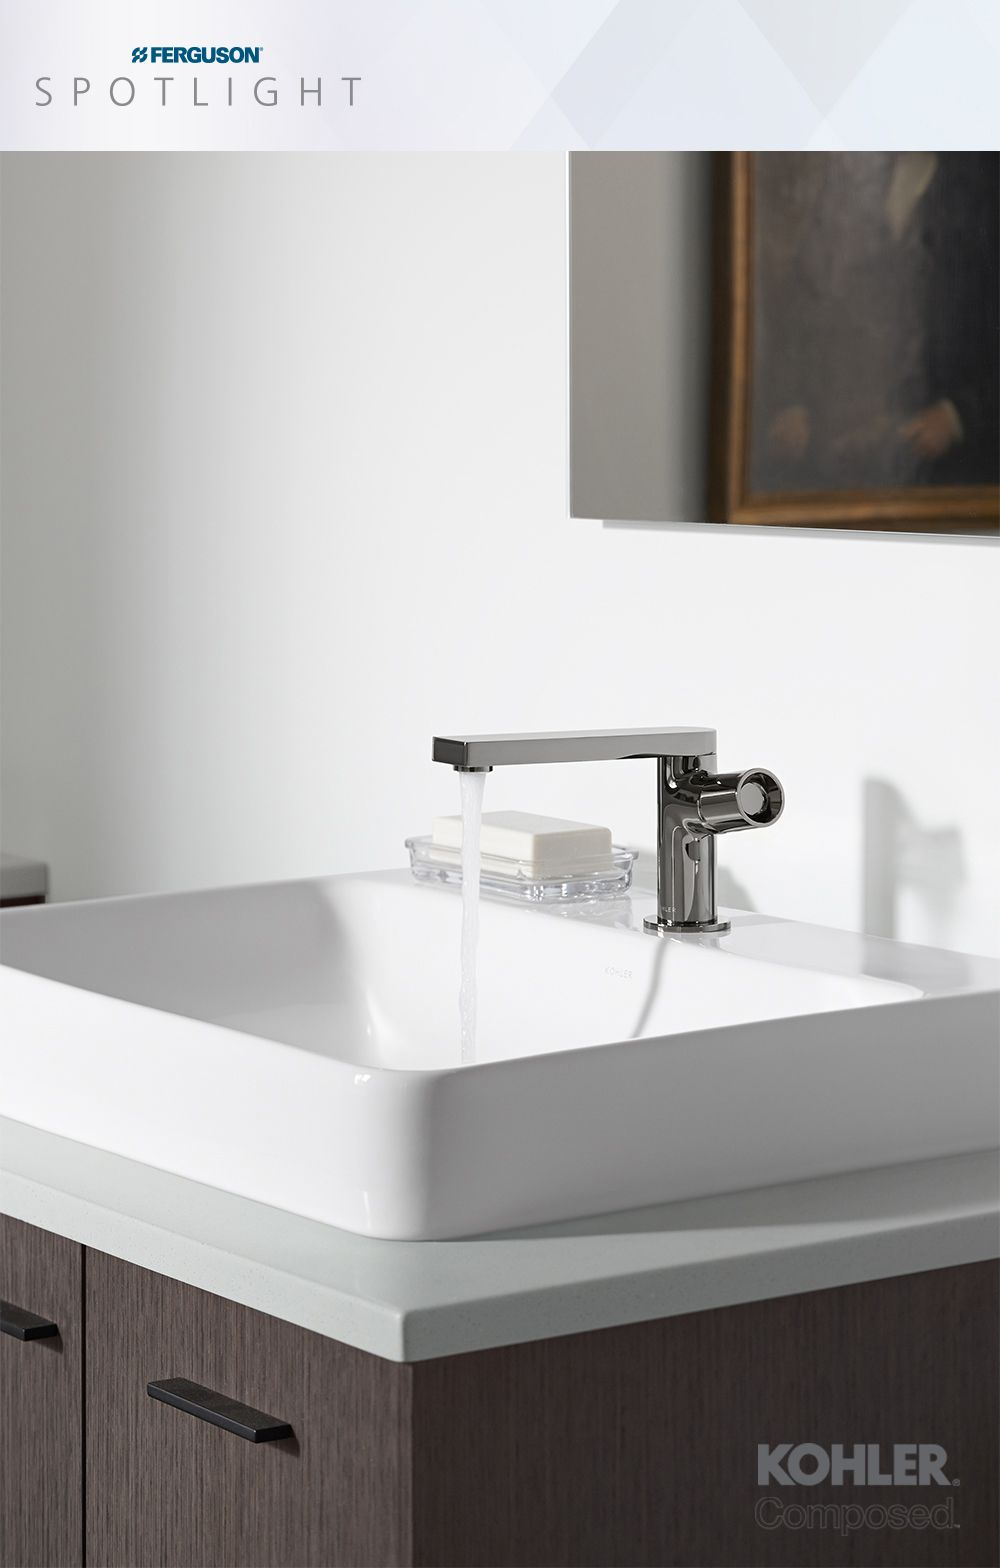 Timeless and deliberate, the KOHLER Composed faucet exhibits the ...